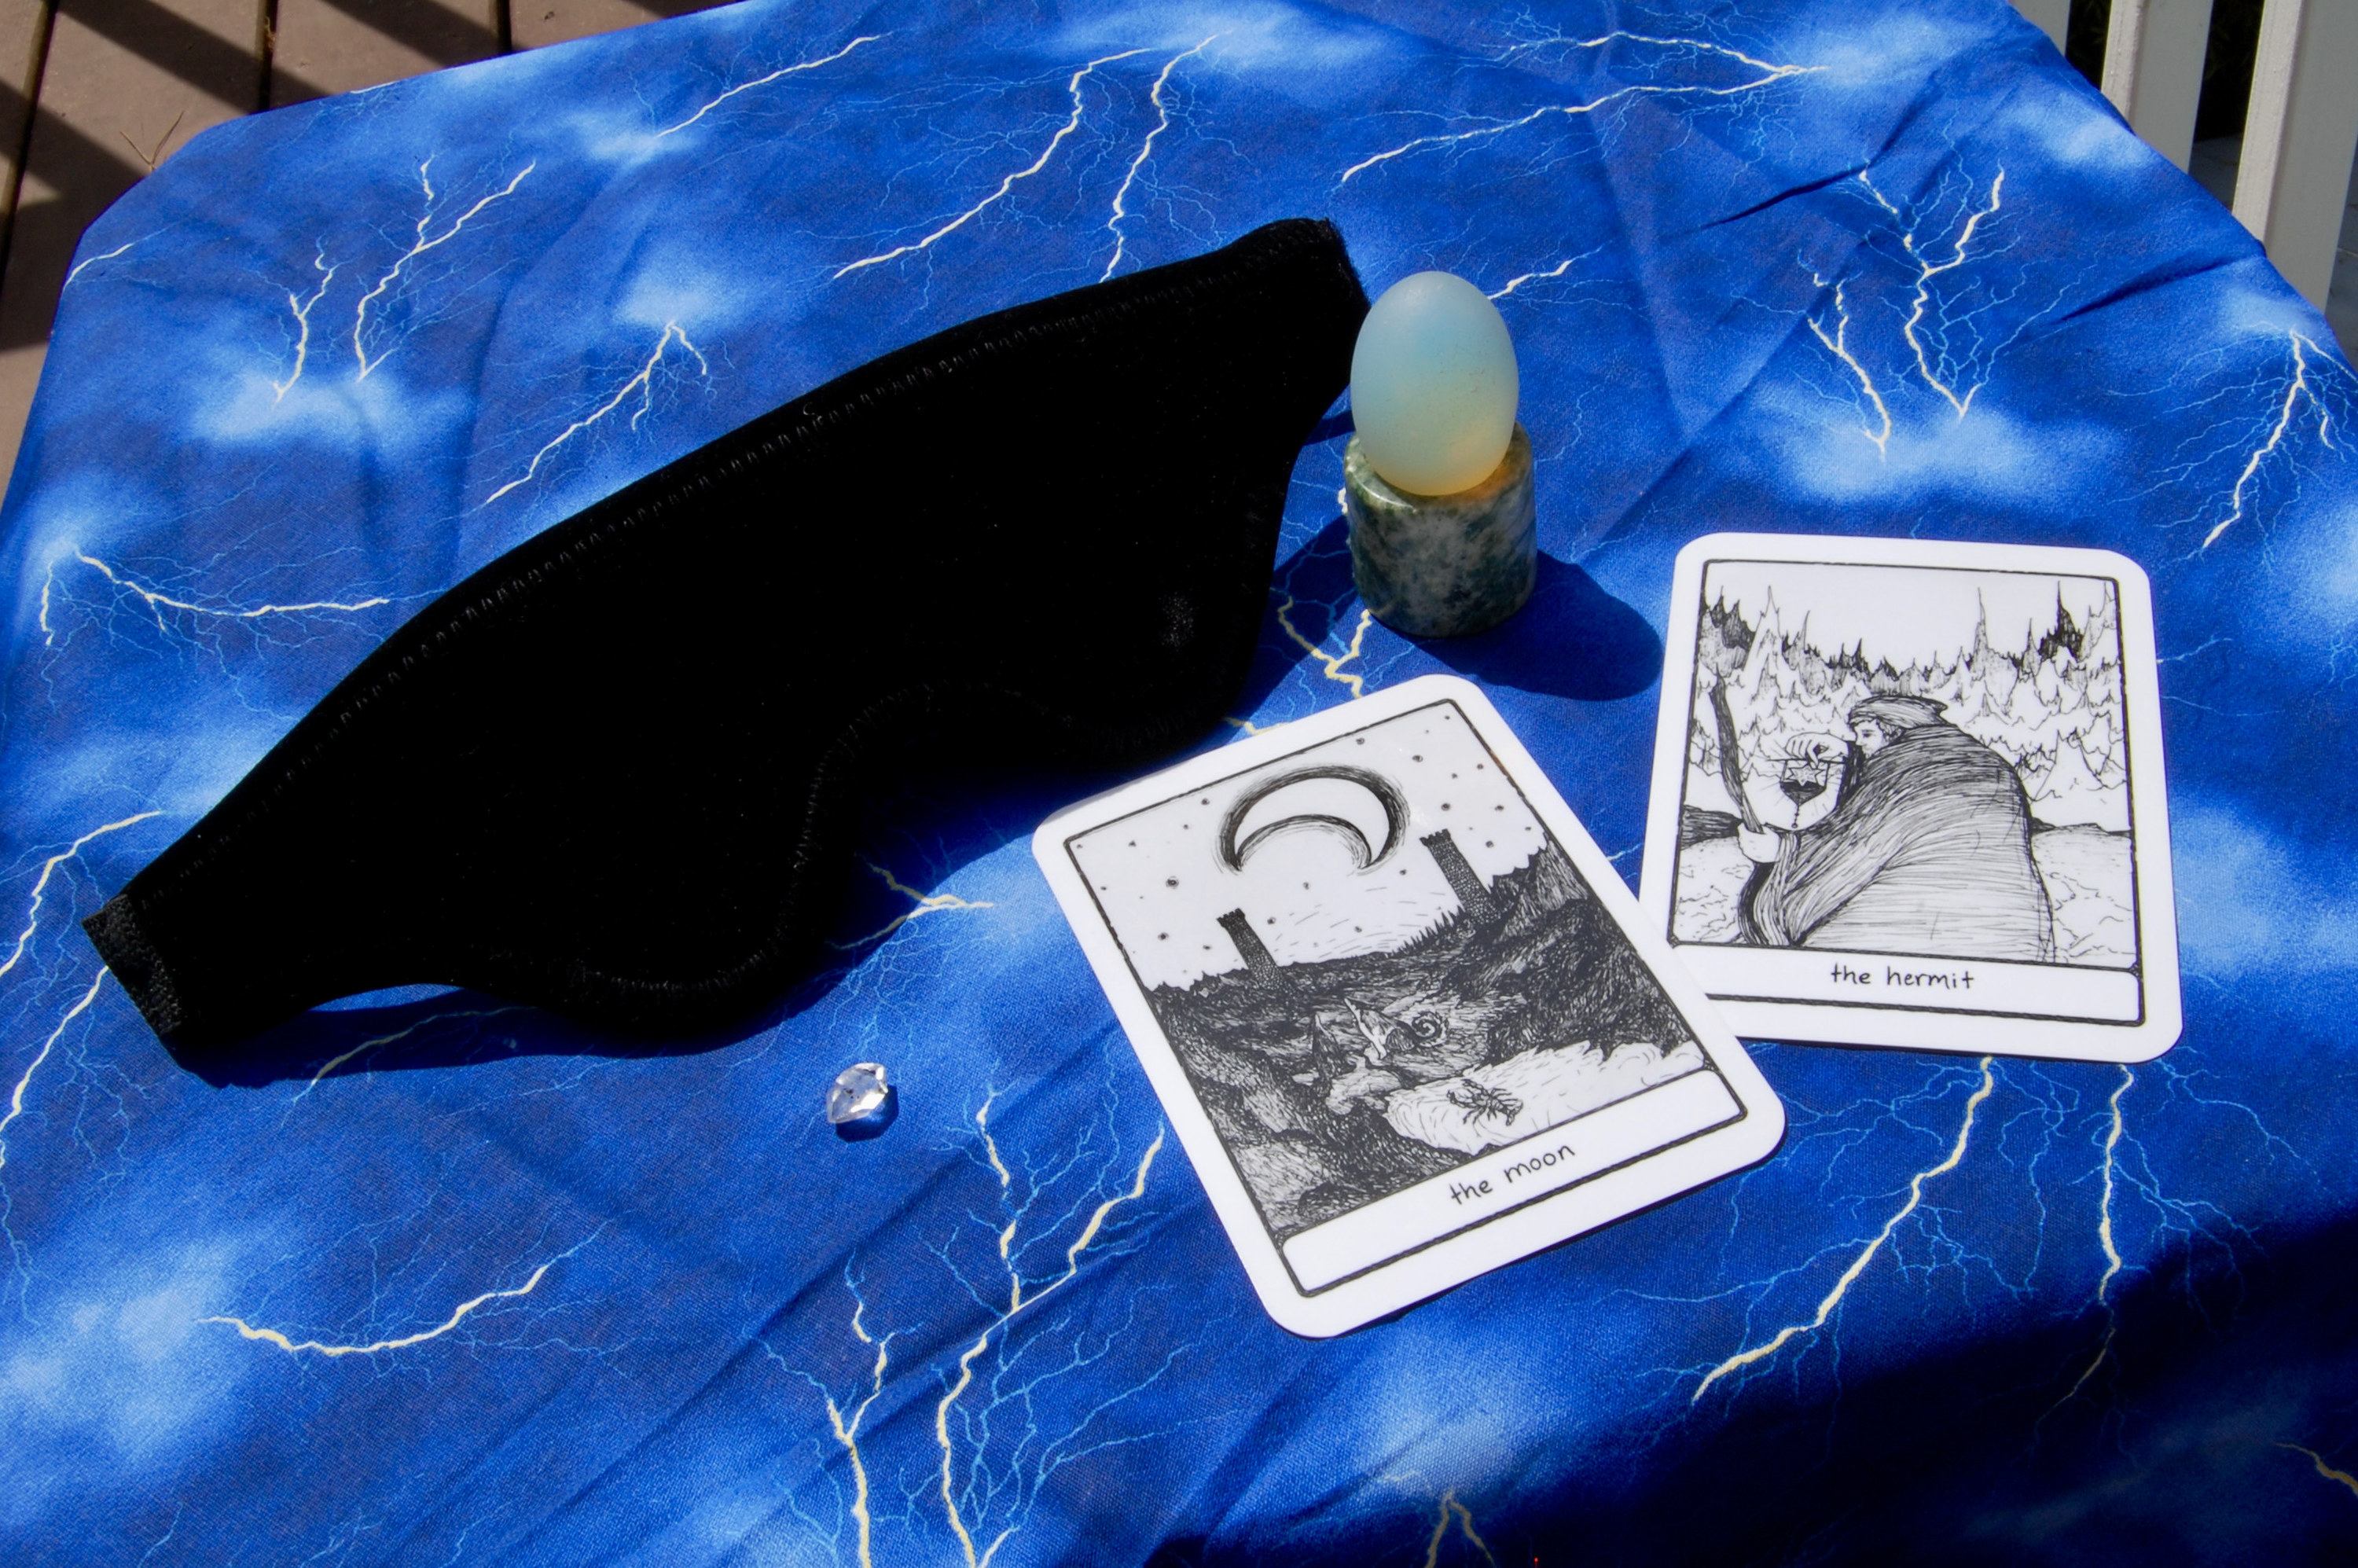 Photo of the Liberator Loveblind with two tarot cards (the Moon and the Hermit), plus a yoni egg and a small crystal